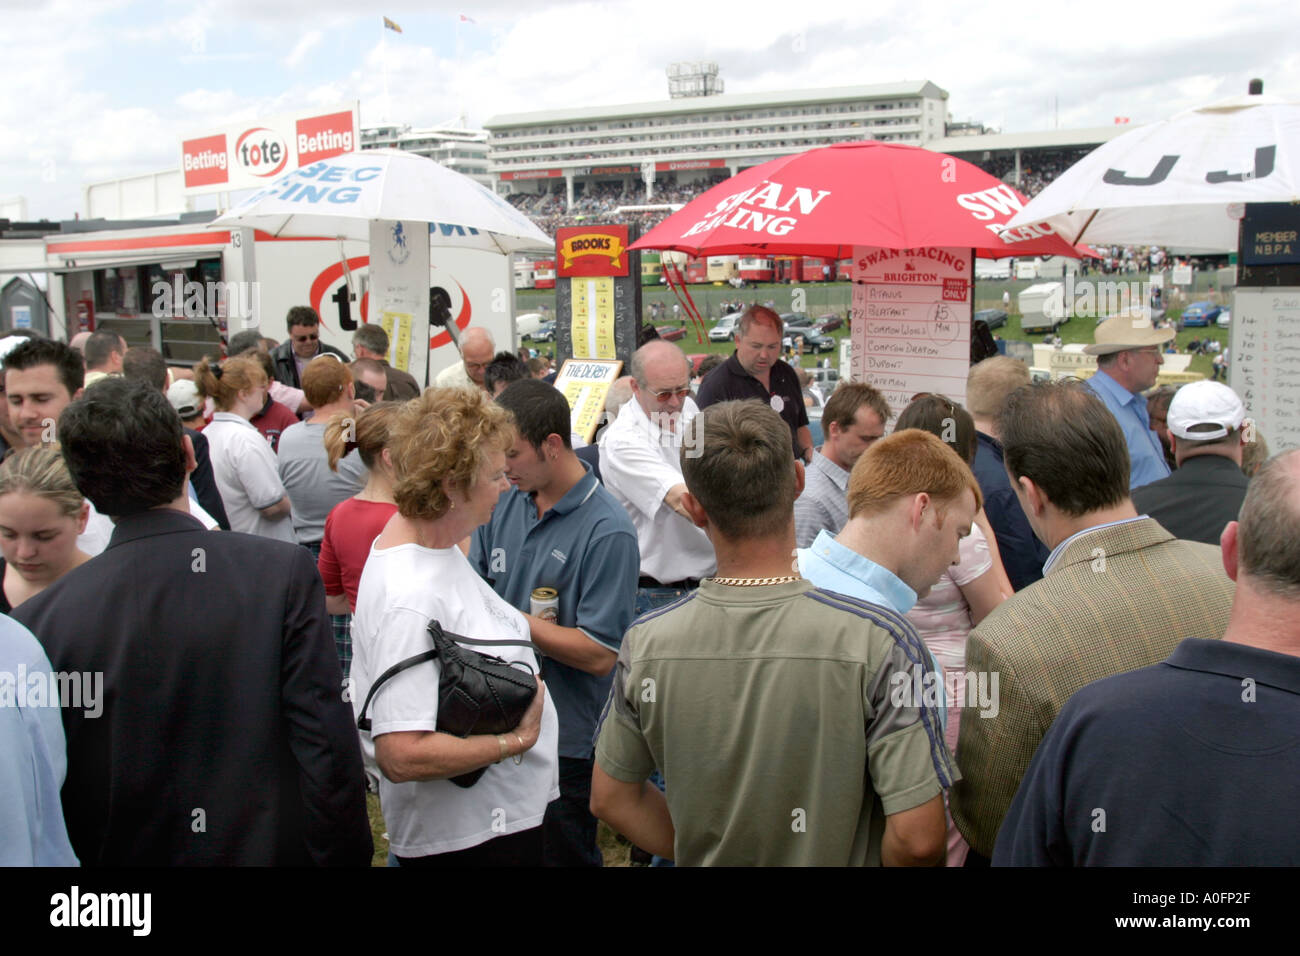 Bookies taking bets on the outcome of THE DERBY Epsom Downs UK Stock Photo